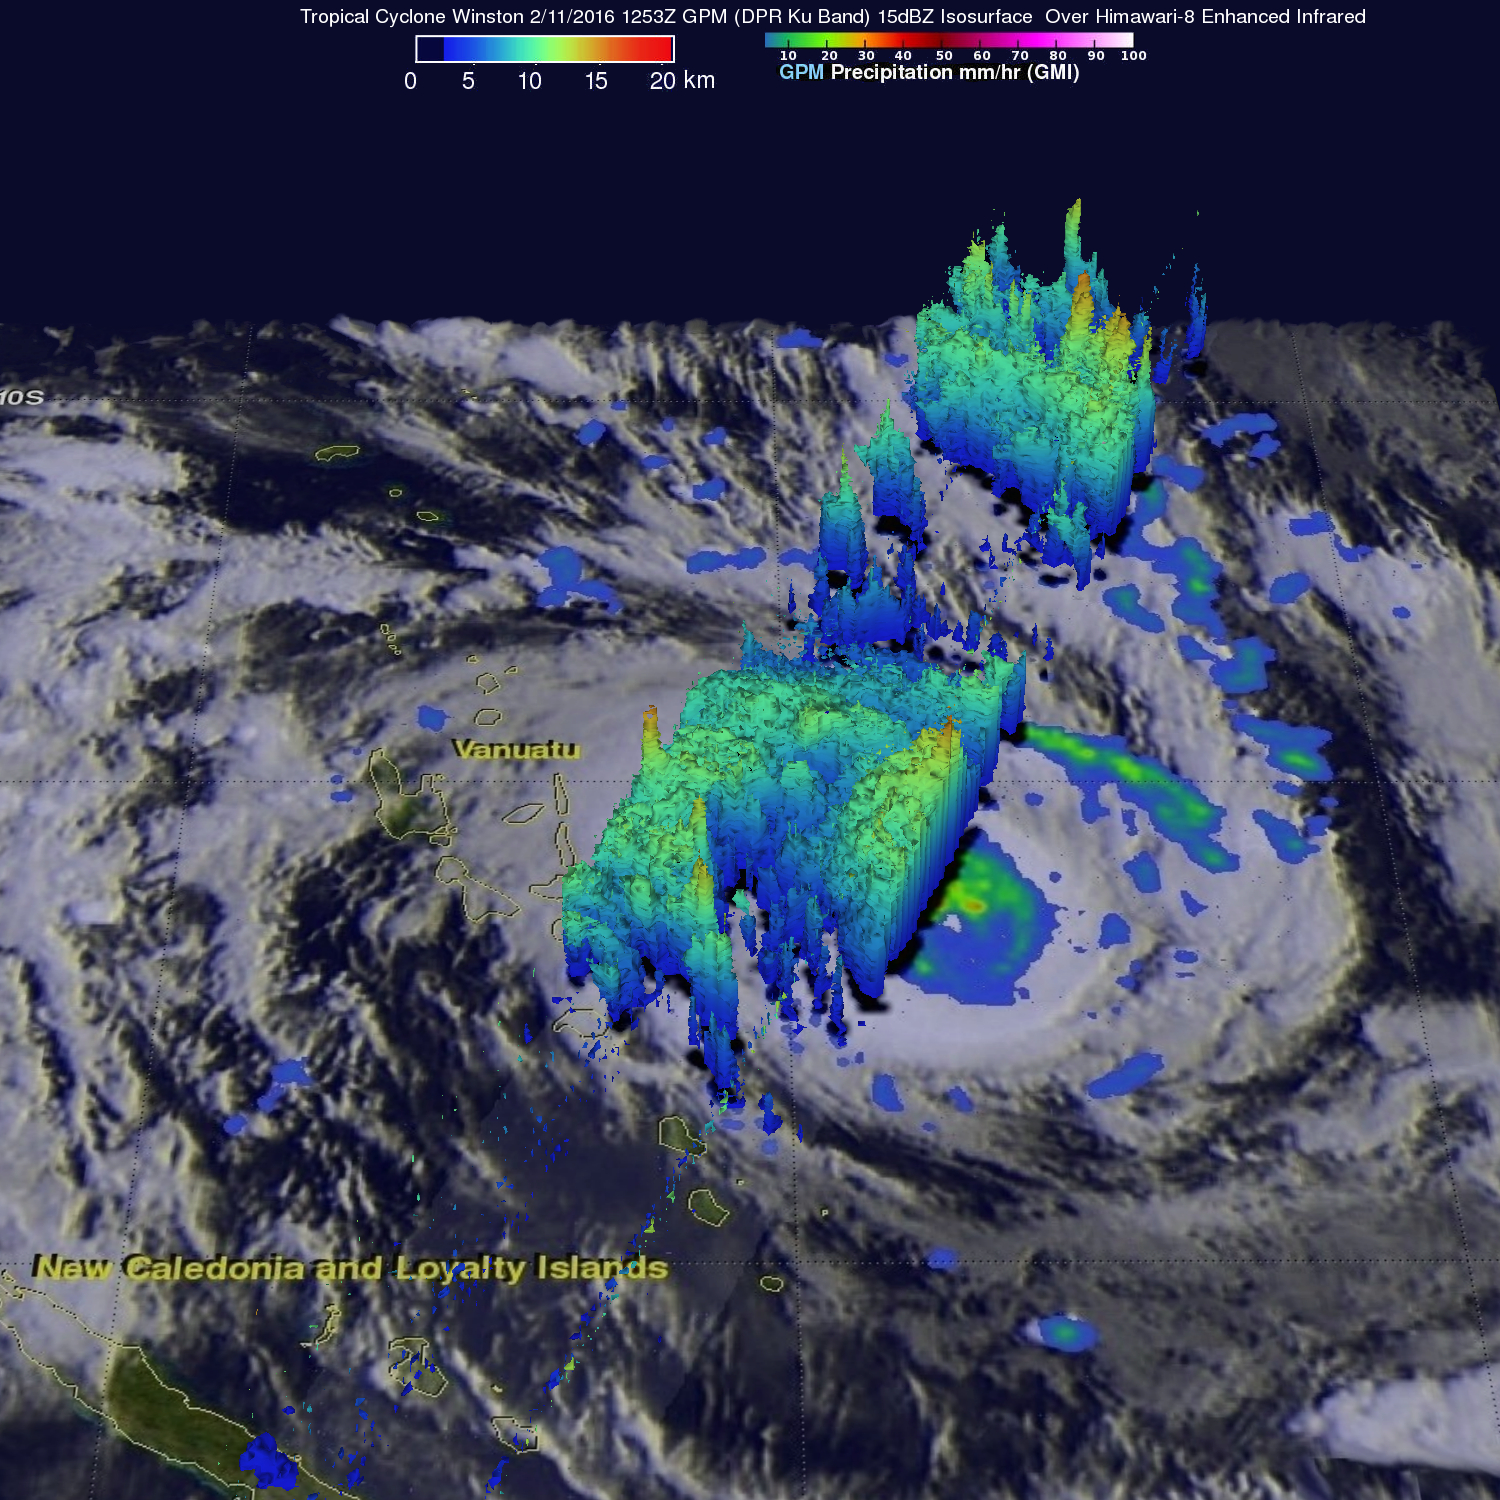 Intensifying South Pacific Tropical Cyclone Winston Viewed By GPM